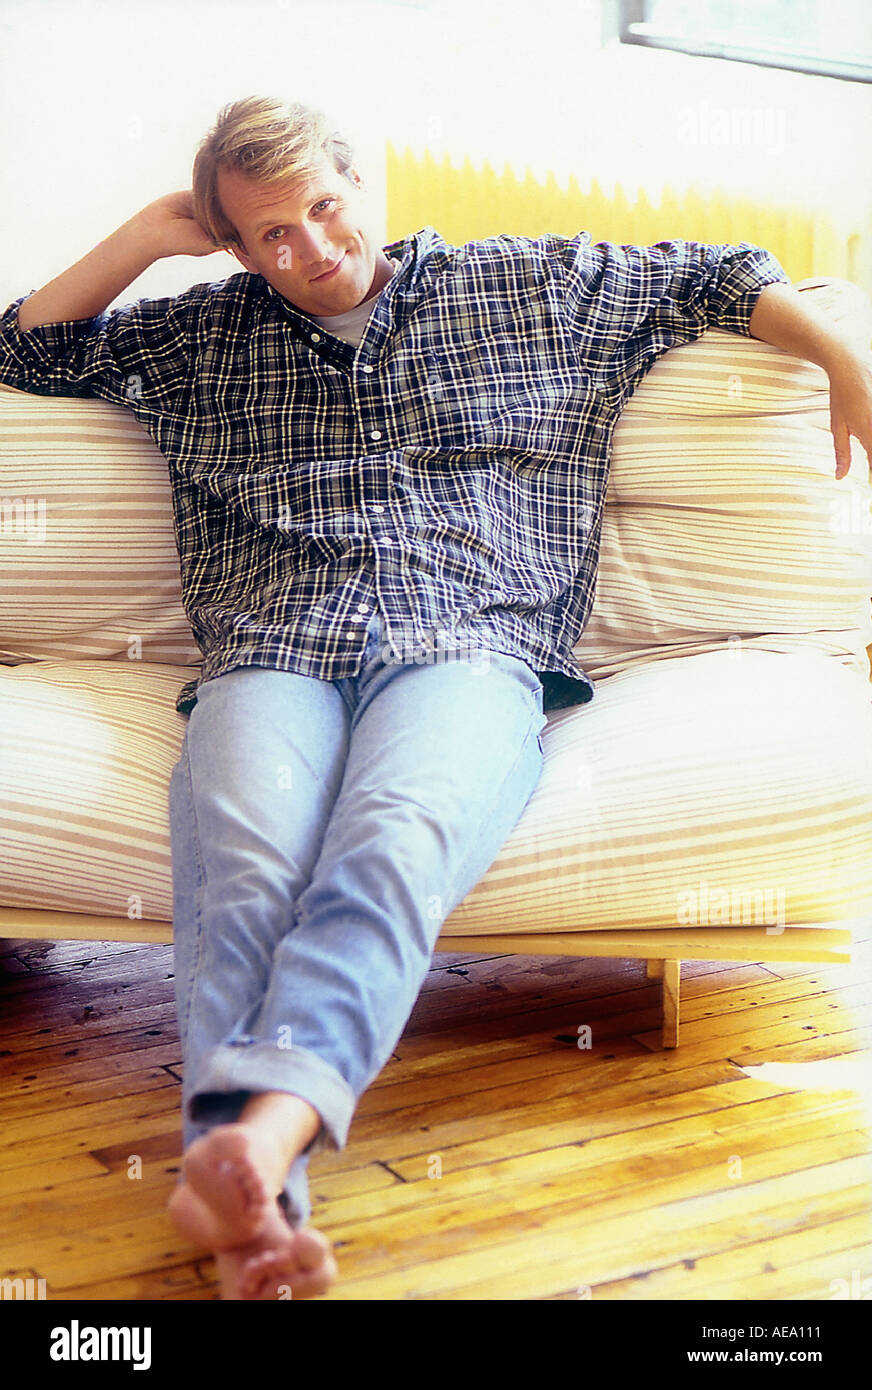 Man sitting on couch smiling - Stock Image